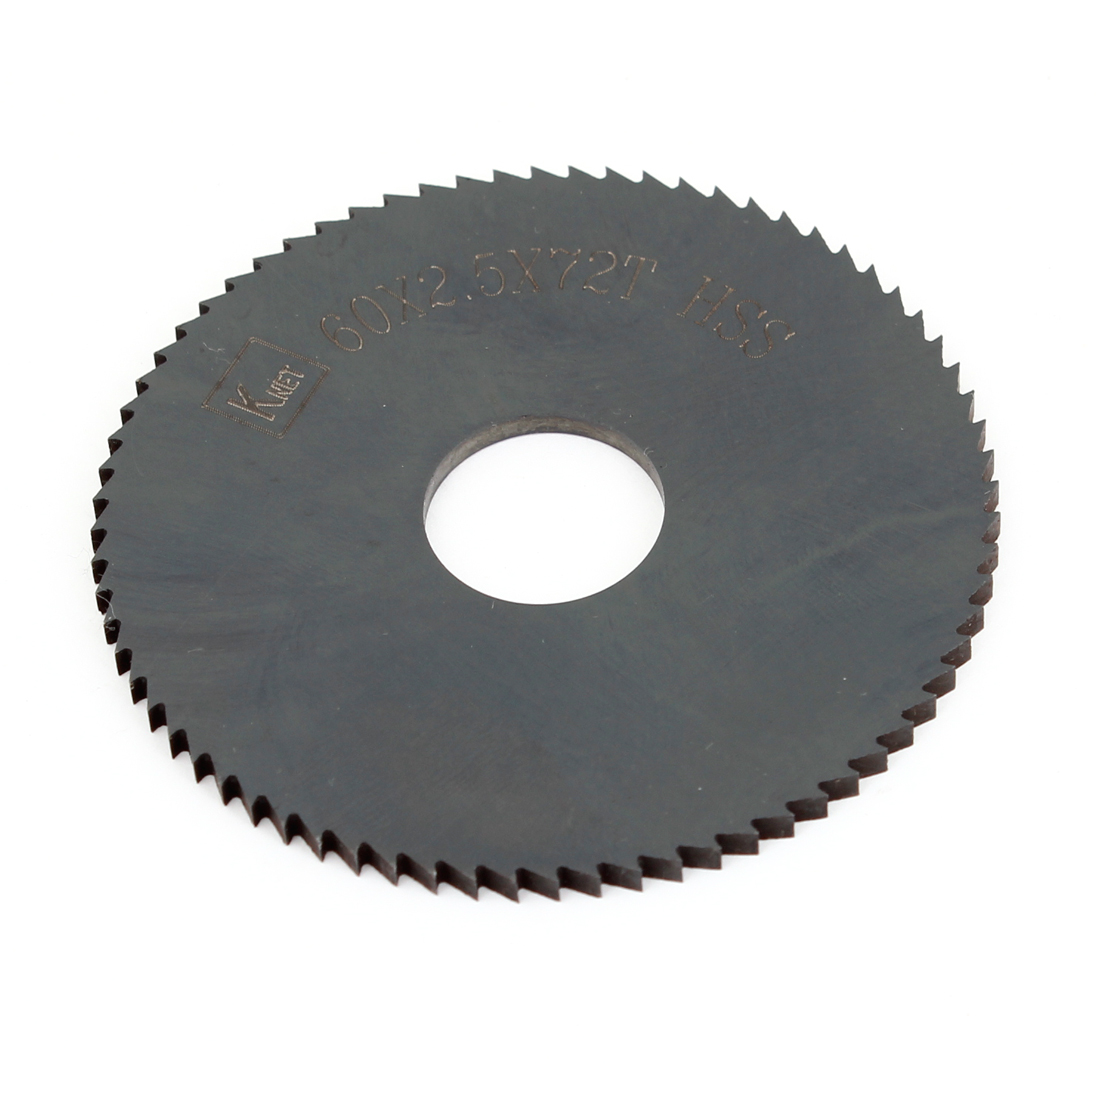 HSS 72 Teeth 60mm x 2.5mm x 16mm Slitting Saw Blade Replacement